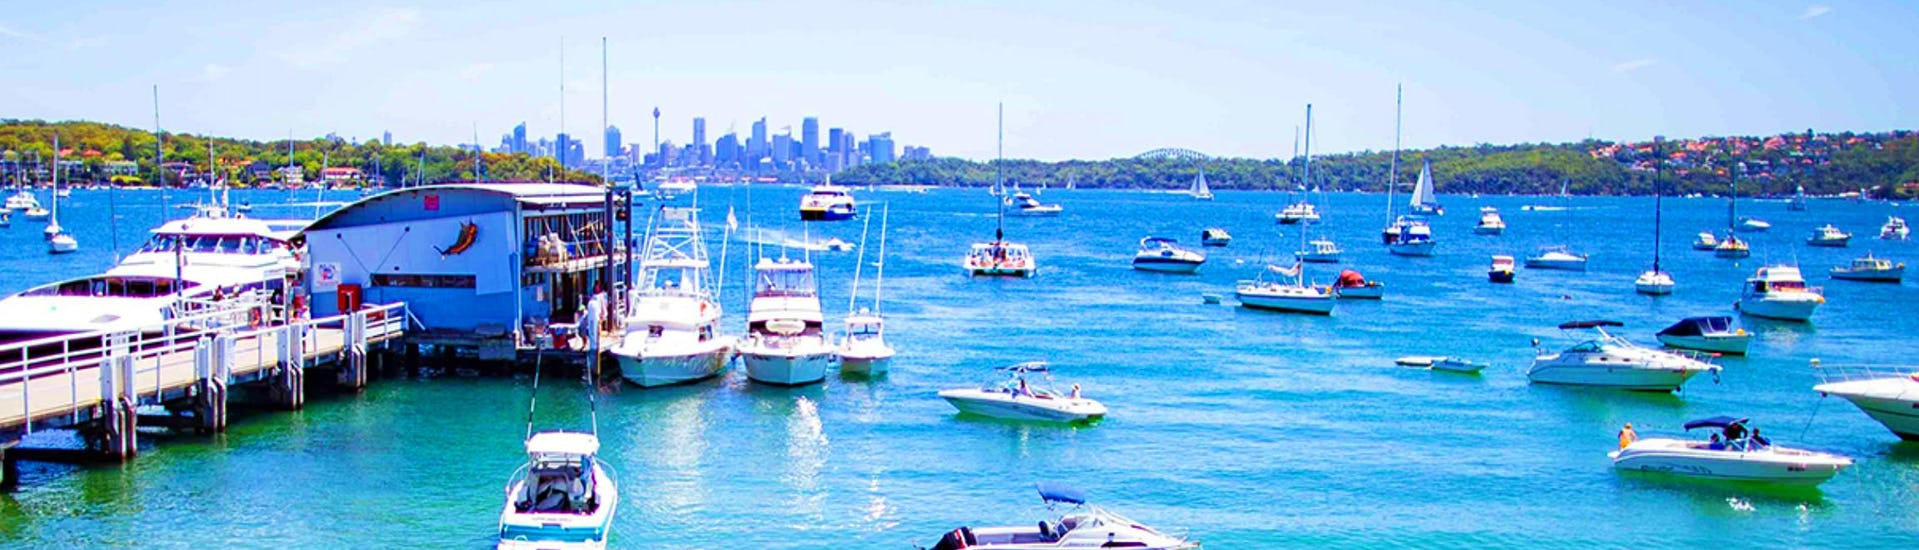 private-sydney-boat-tour-with-beach-picnic-sydney-harbour-boat-tours